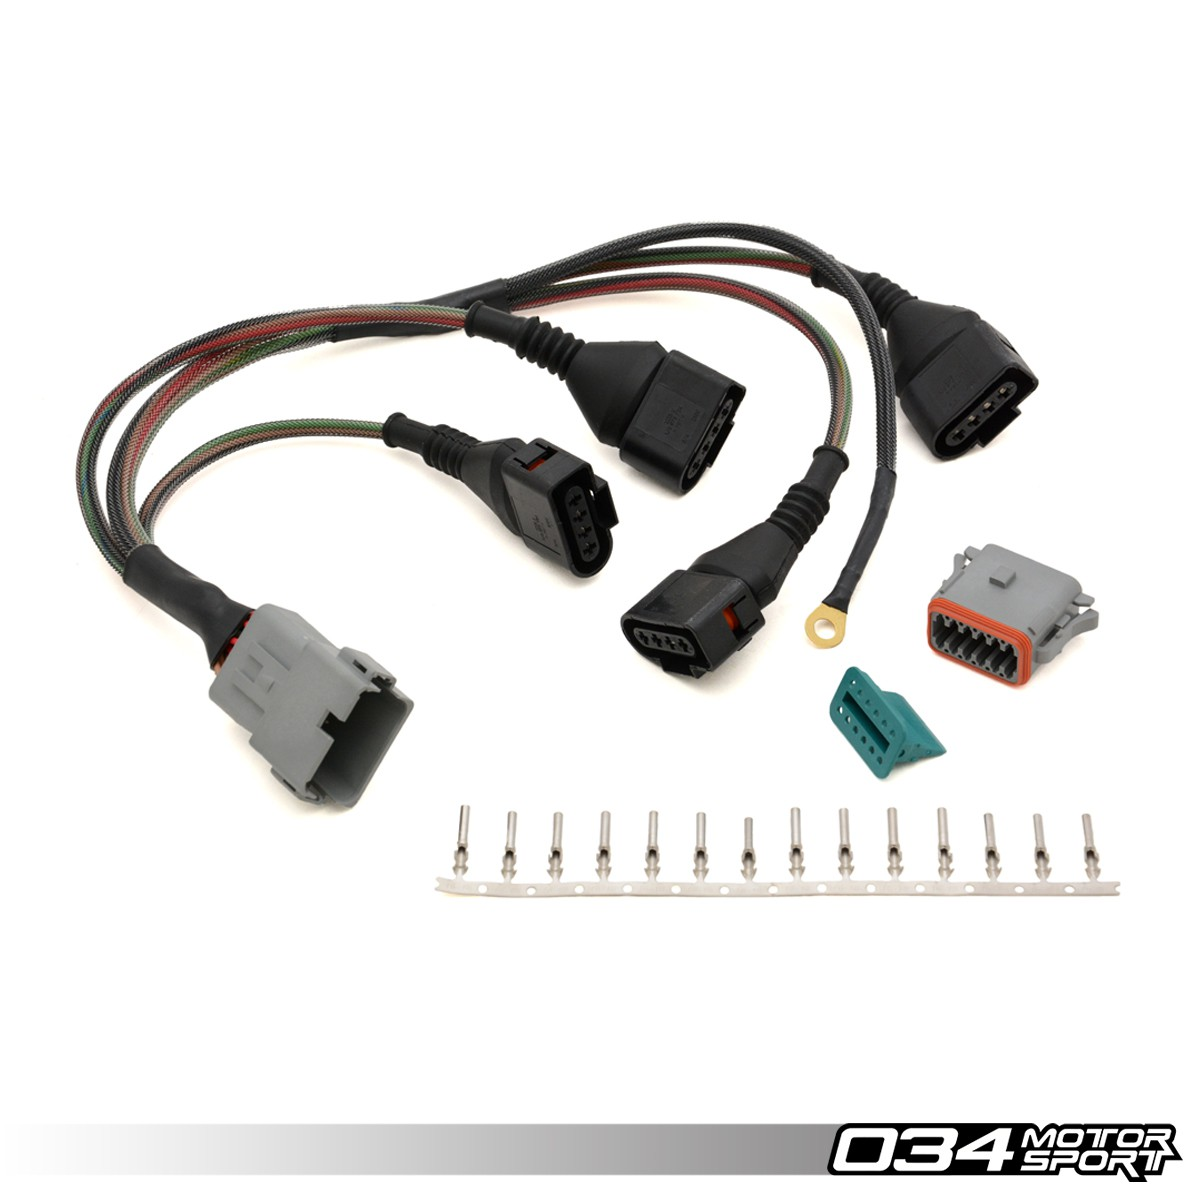 repair update harness audi volkswagen 18t with 4 wire coils 034motorsport 034 701 0004 2 repair update harness, audi volkswagen 1 8t with 4 wire coils how to repair wire harness connector at fashall.co